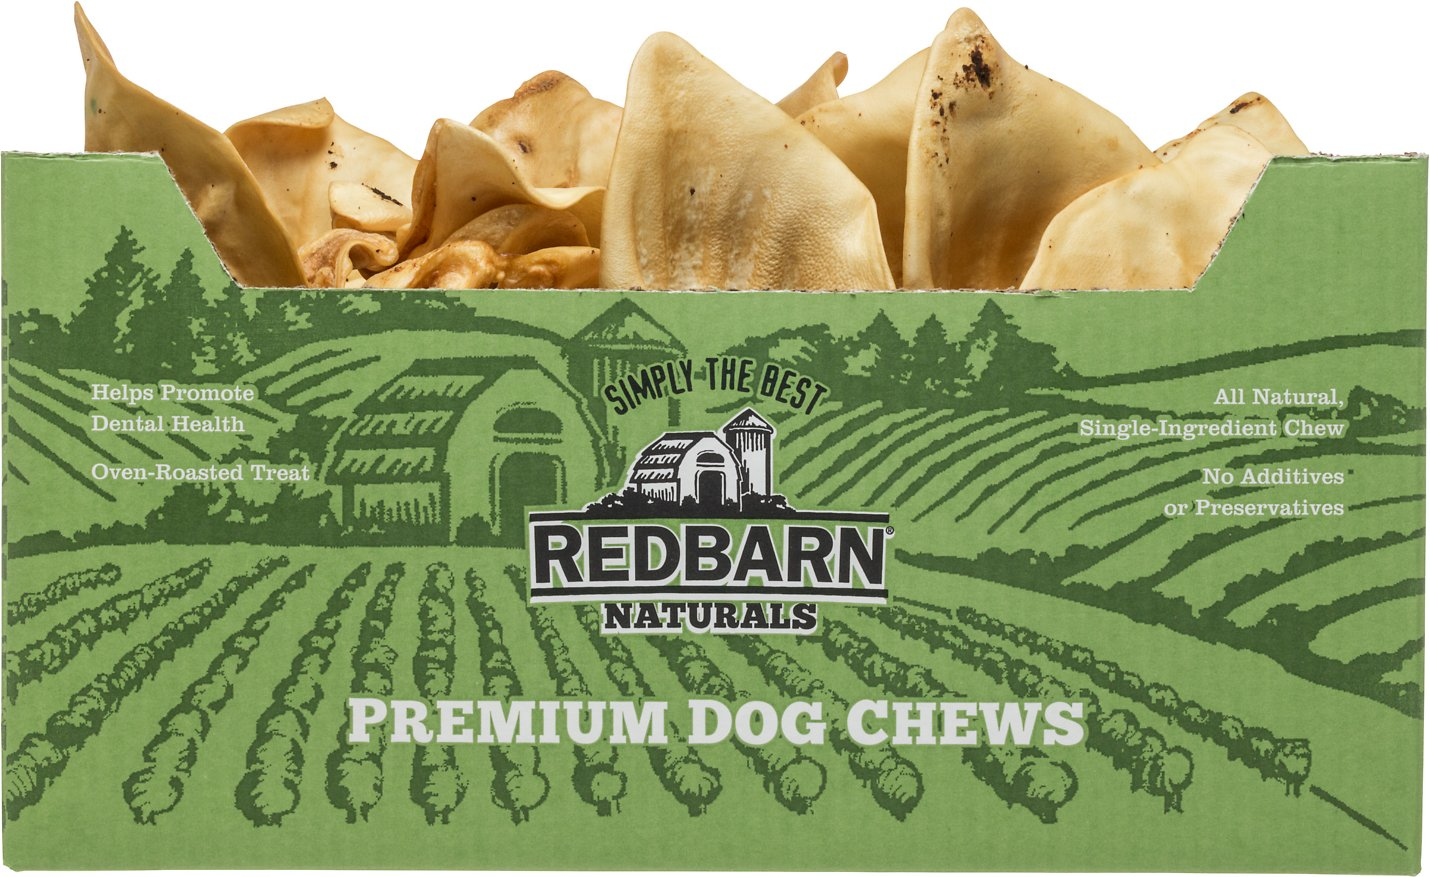 Redbarn Naturals Puffed Sow Ears Dog Treats, 40-count